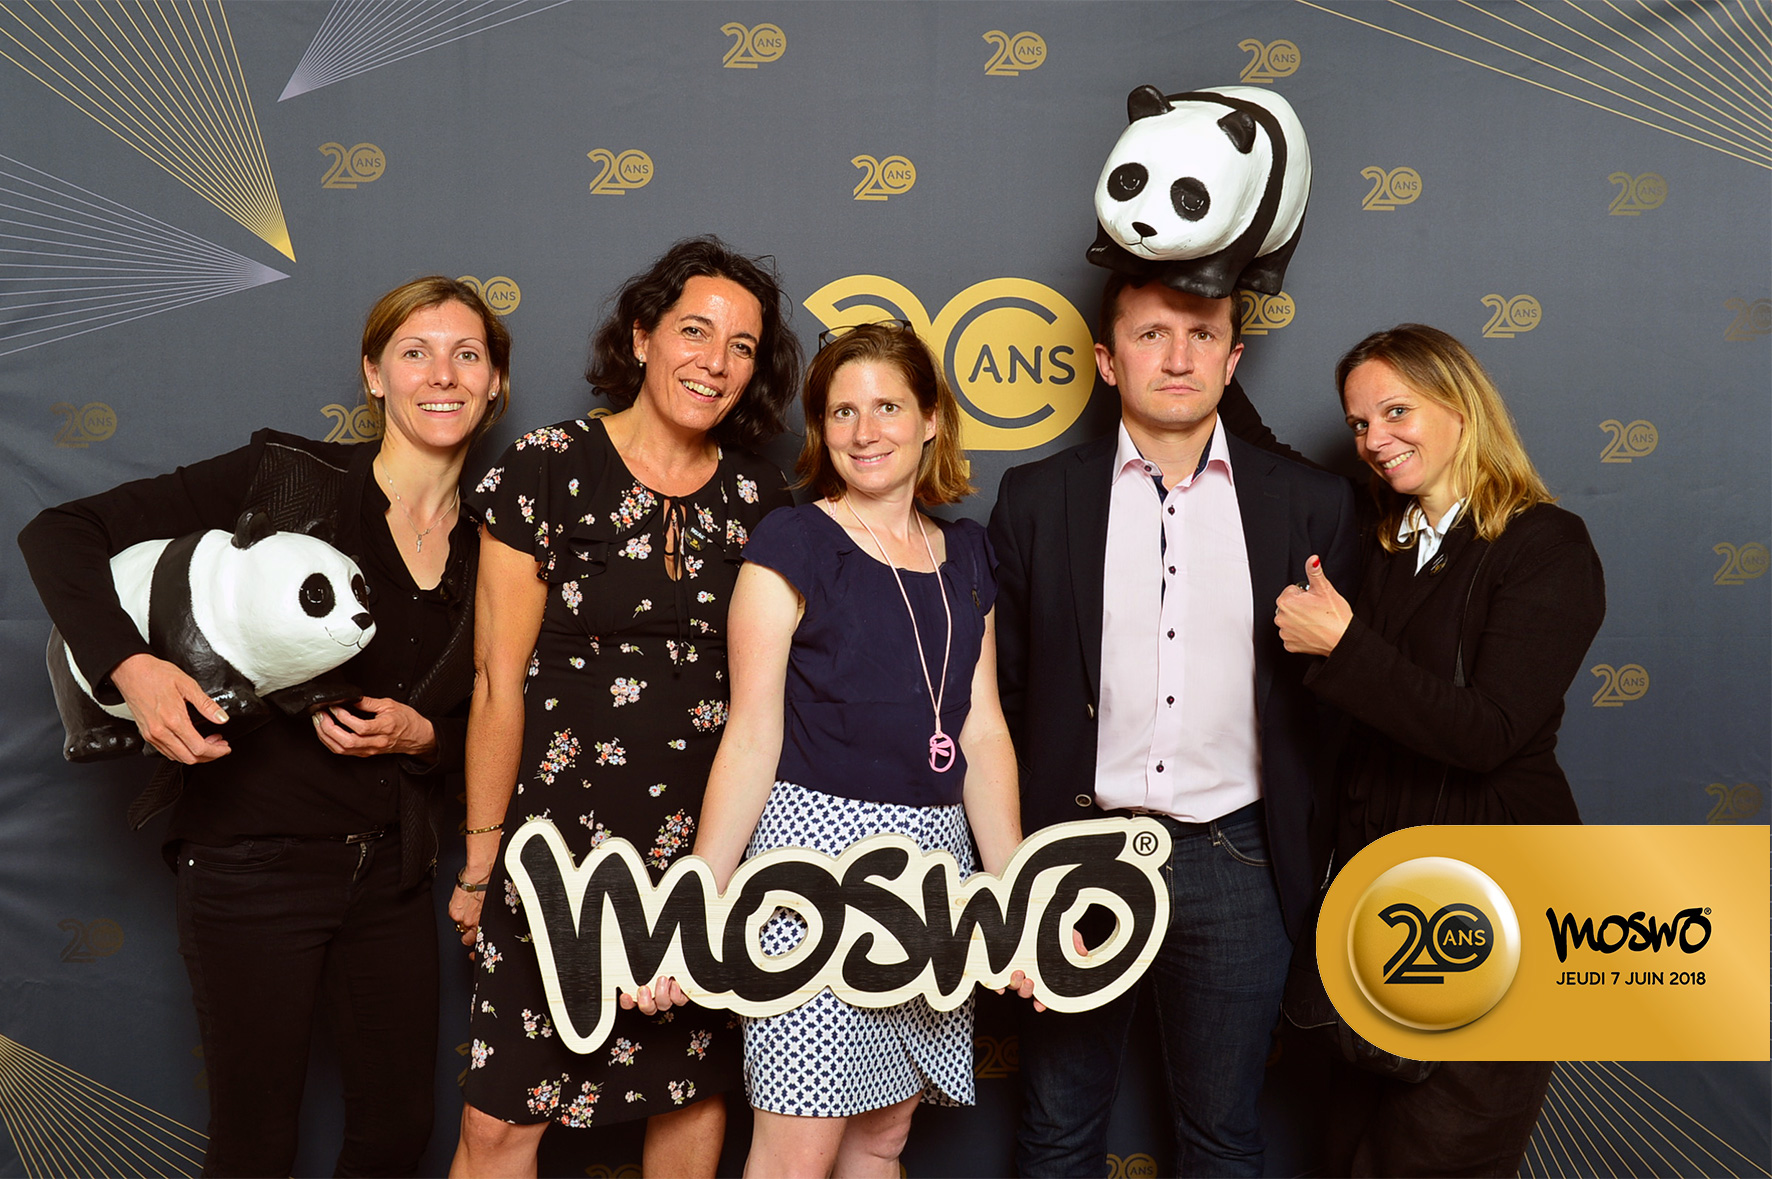 Photocall Moswo 20 ans